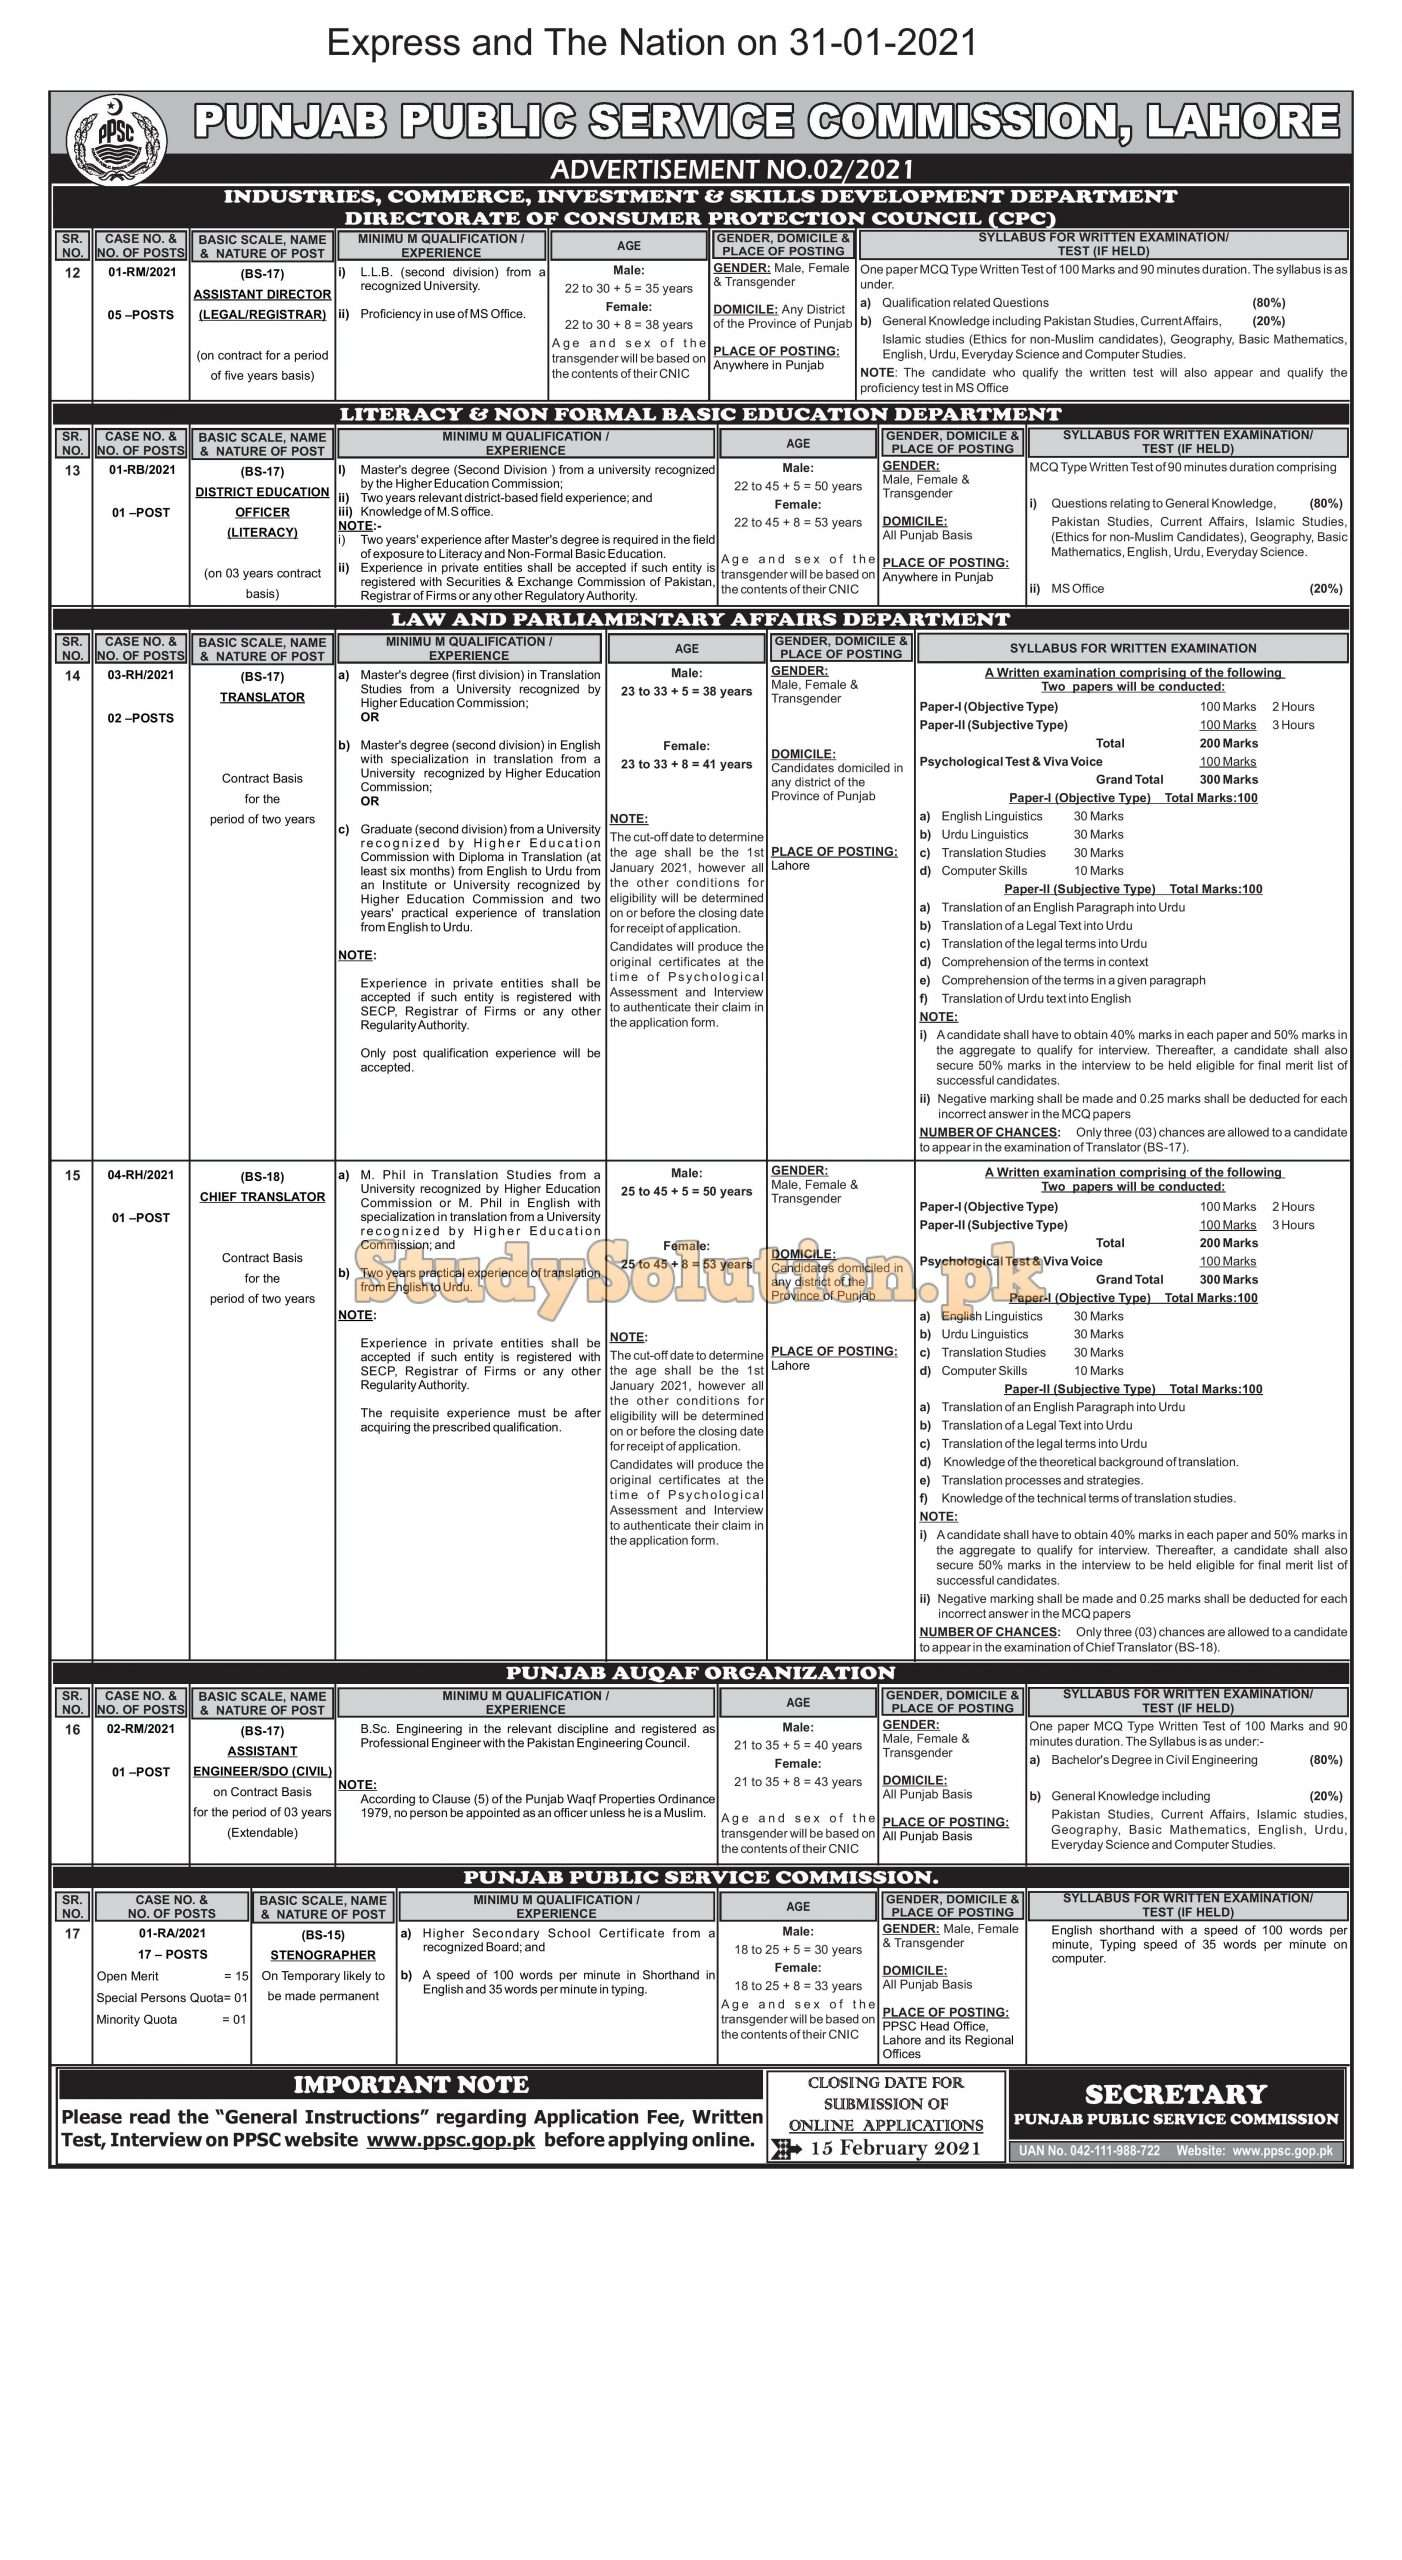 PPSC Punjab Public Service Commission Latest Jobs 2021 Advertisement No 02/2021